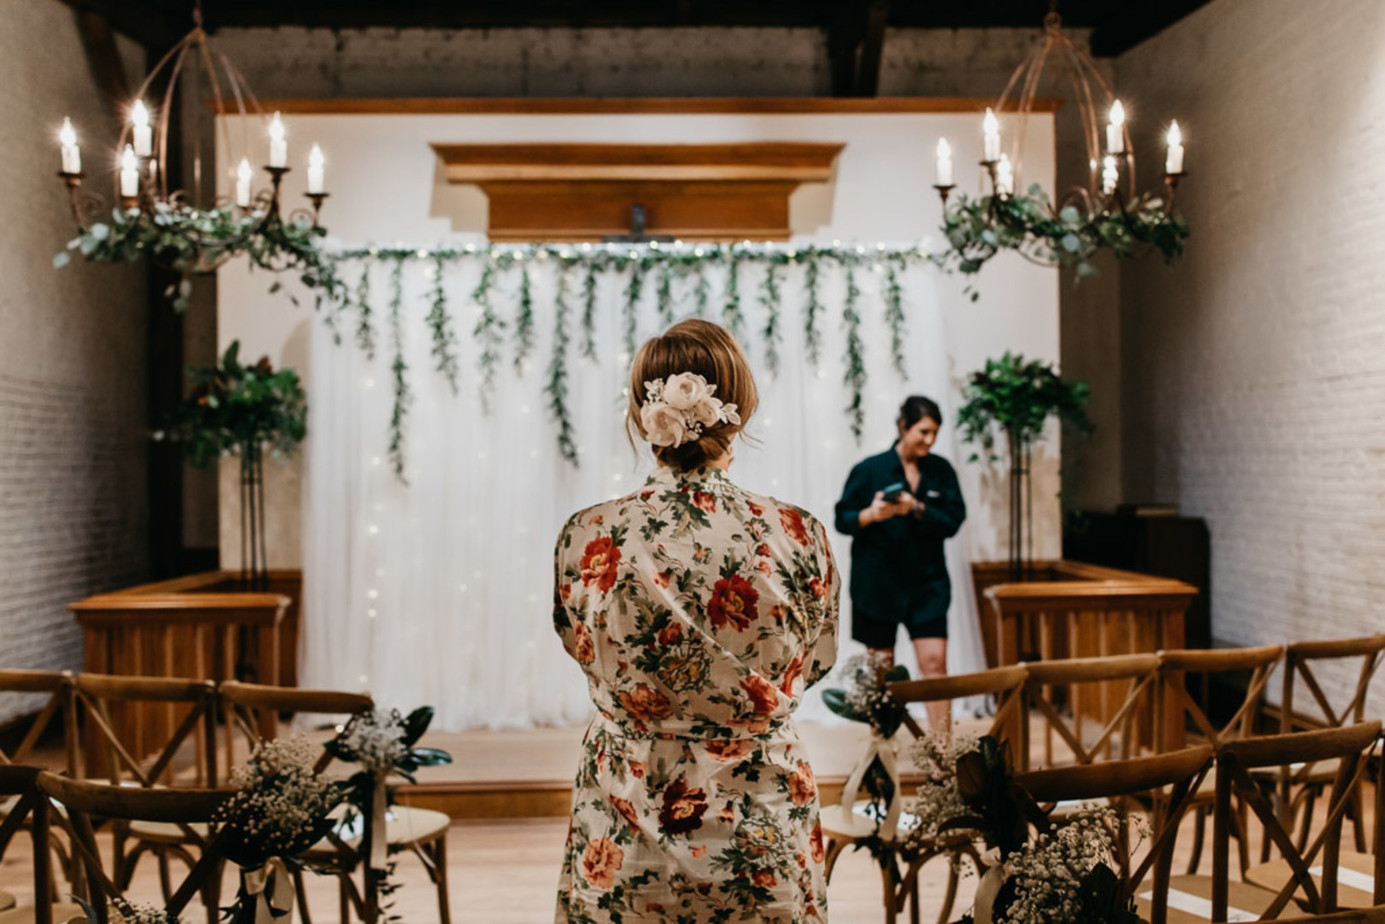 industrial chic wedding. Classy wedding in an industrial wedding setup. How to plan a wedding. Real couples getting married. #weddingplanning #chicwedding